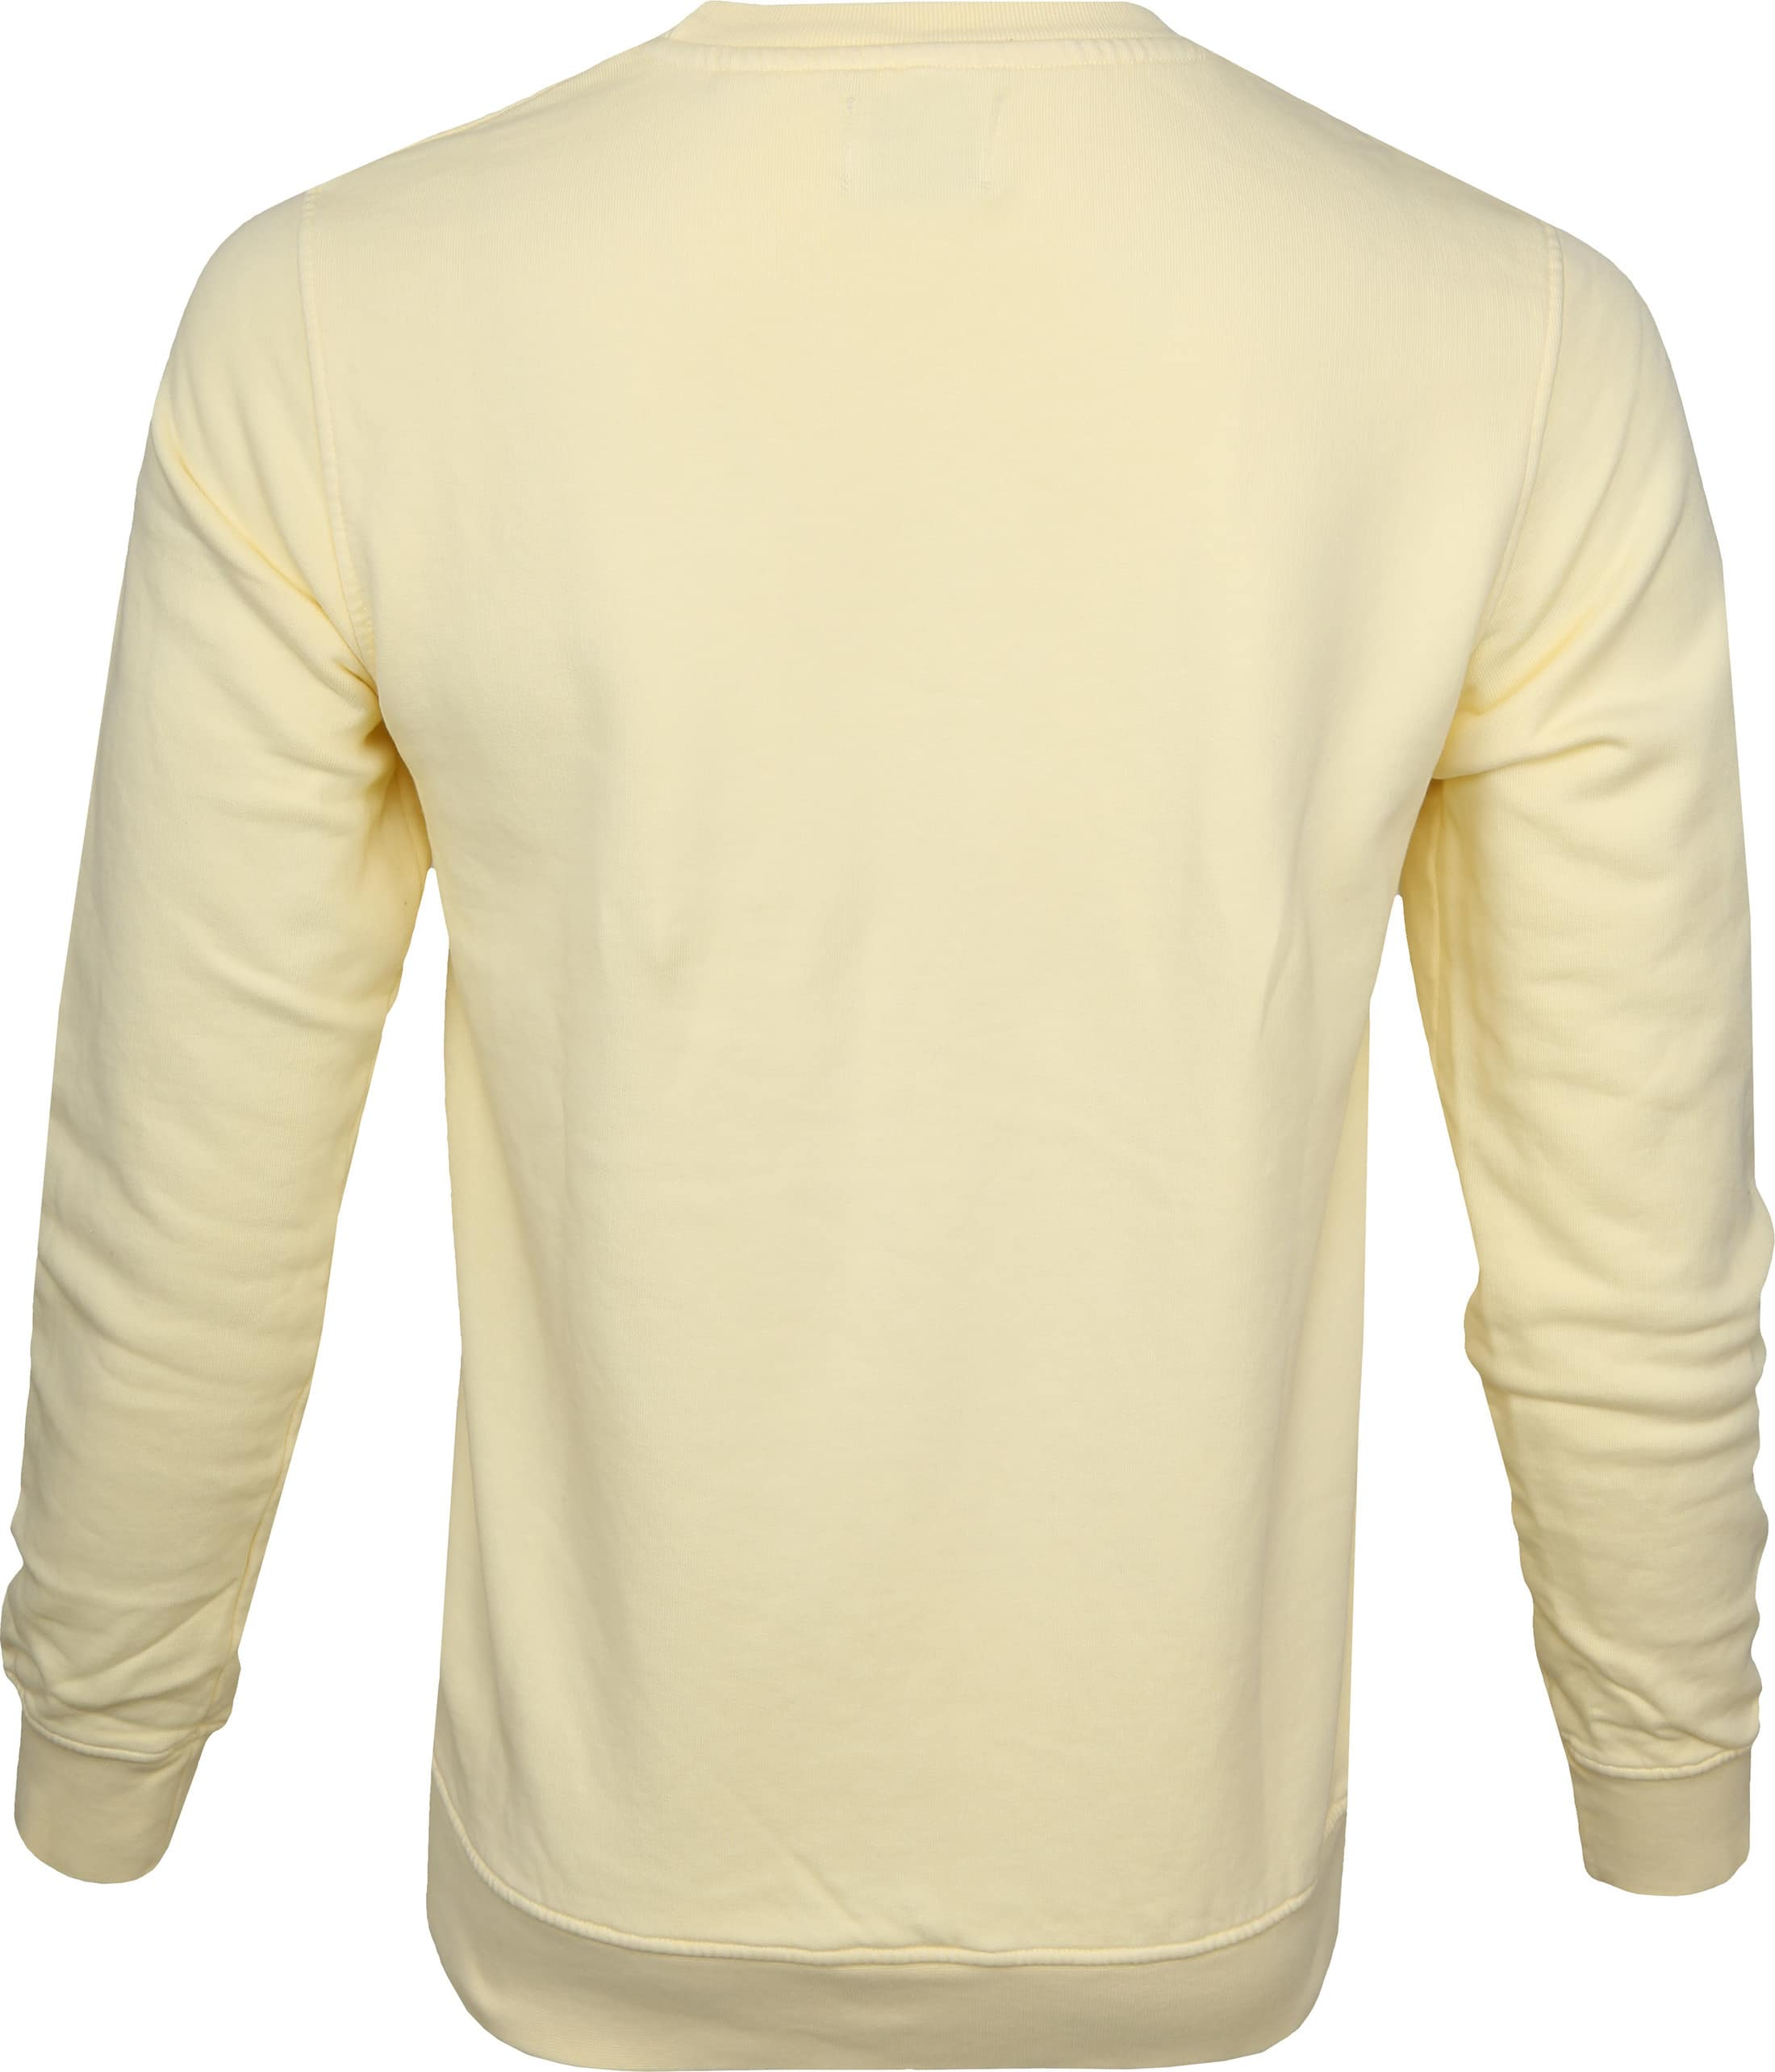 Colorful Standard Sweater Soft Yellow foto 2